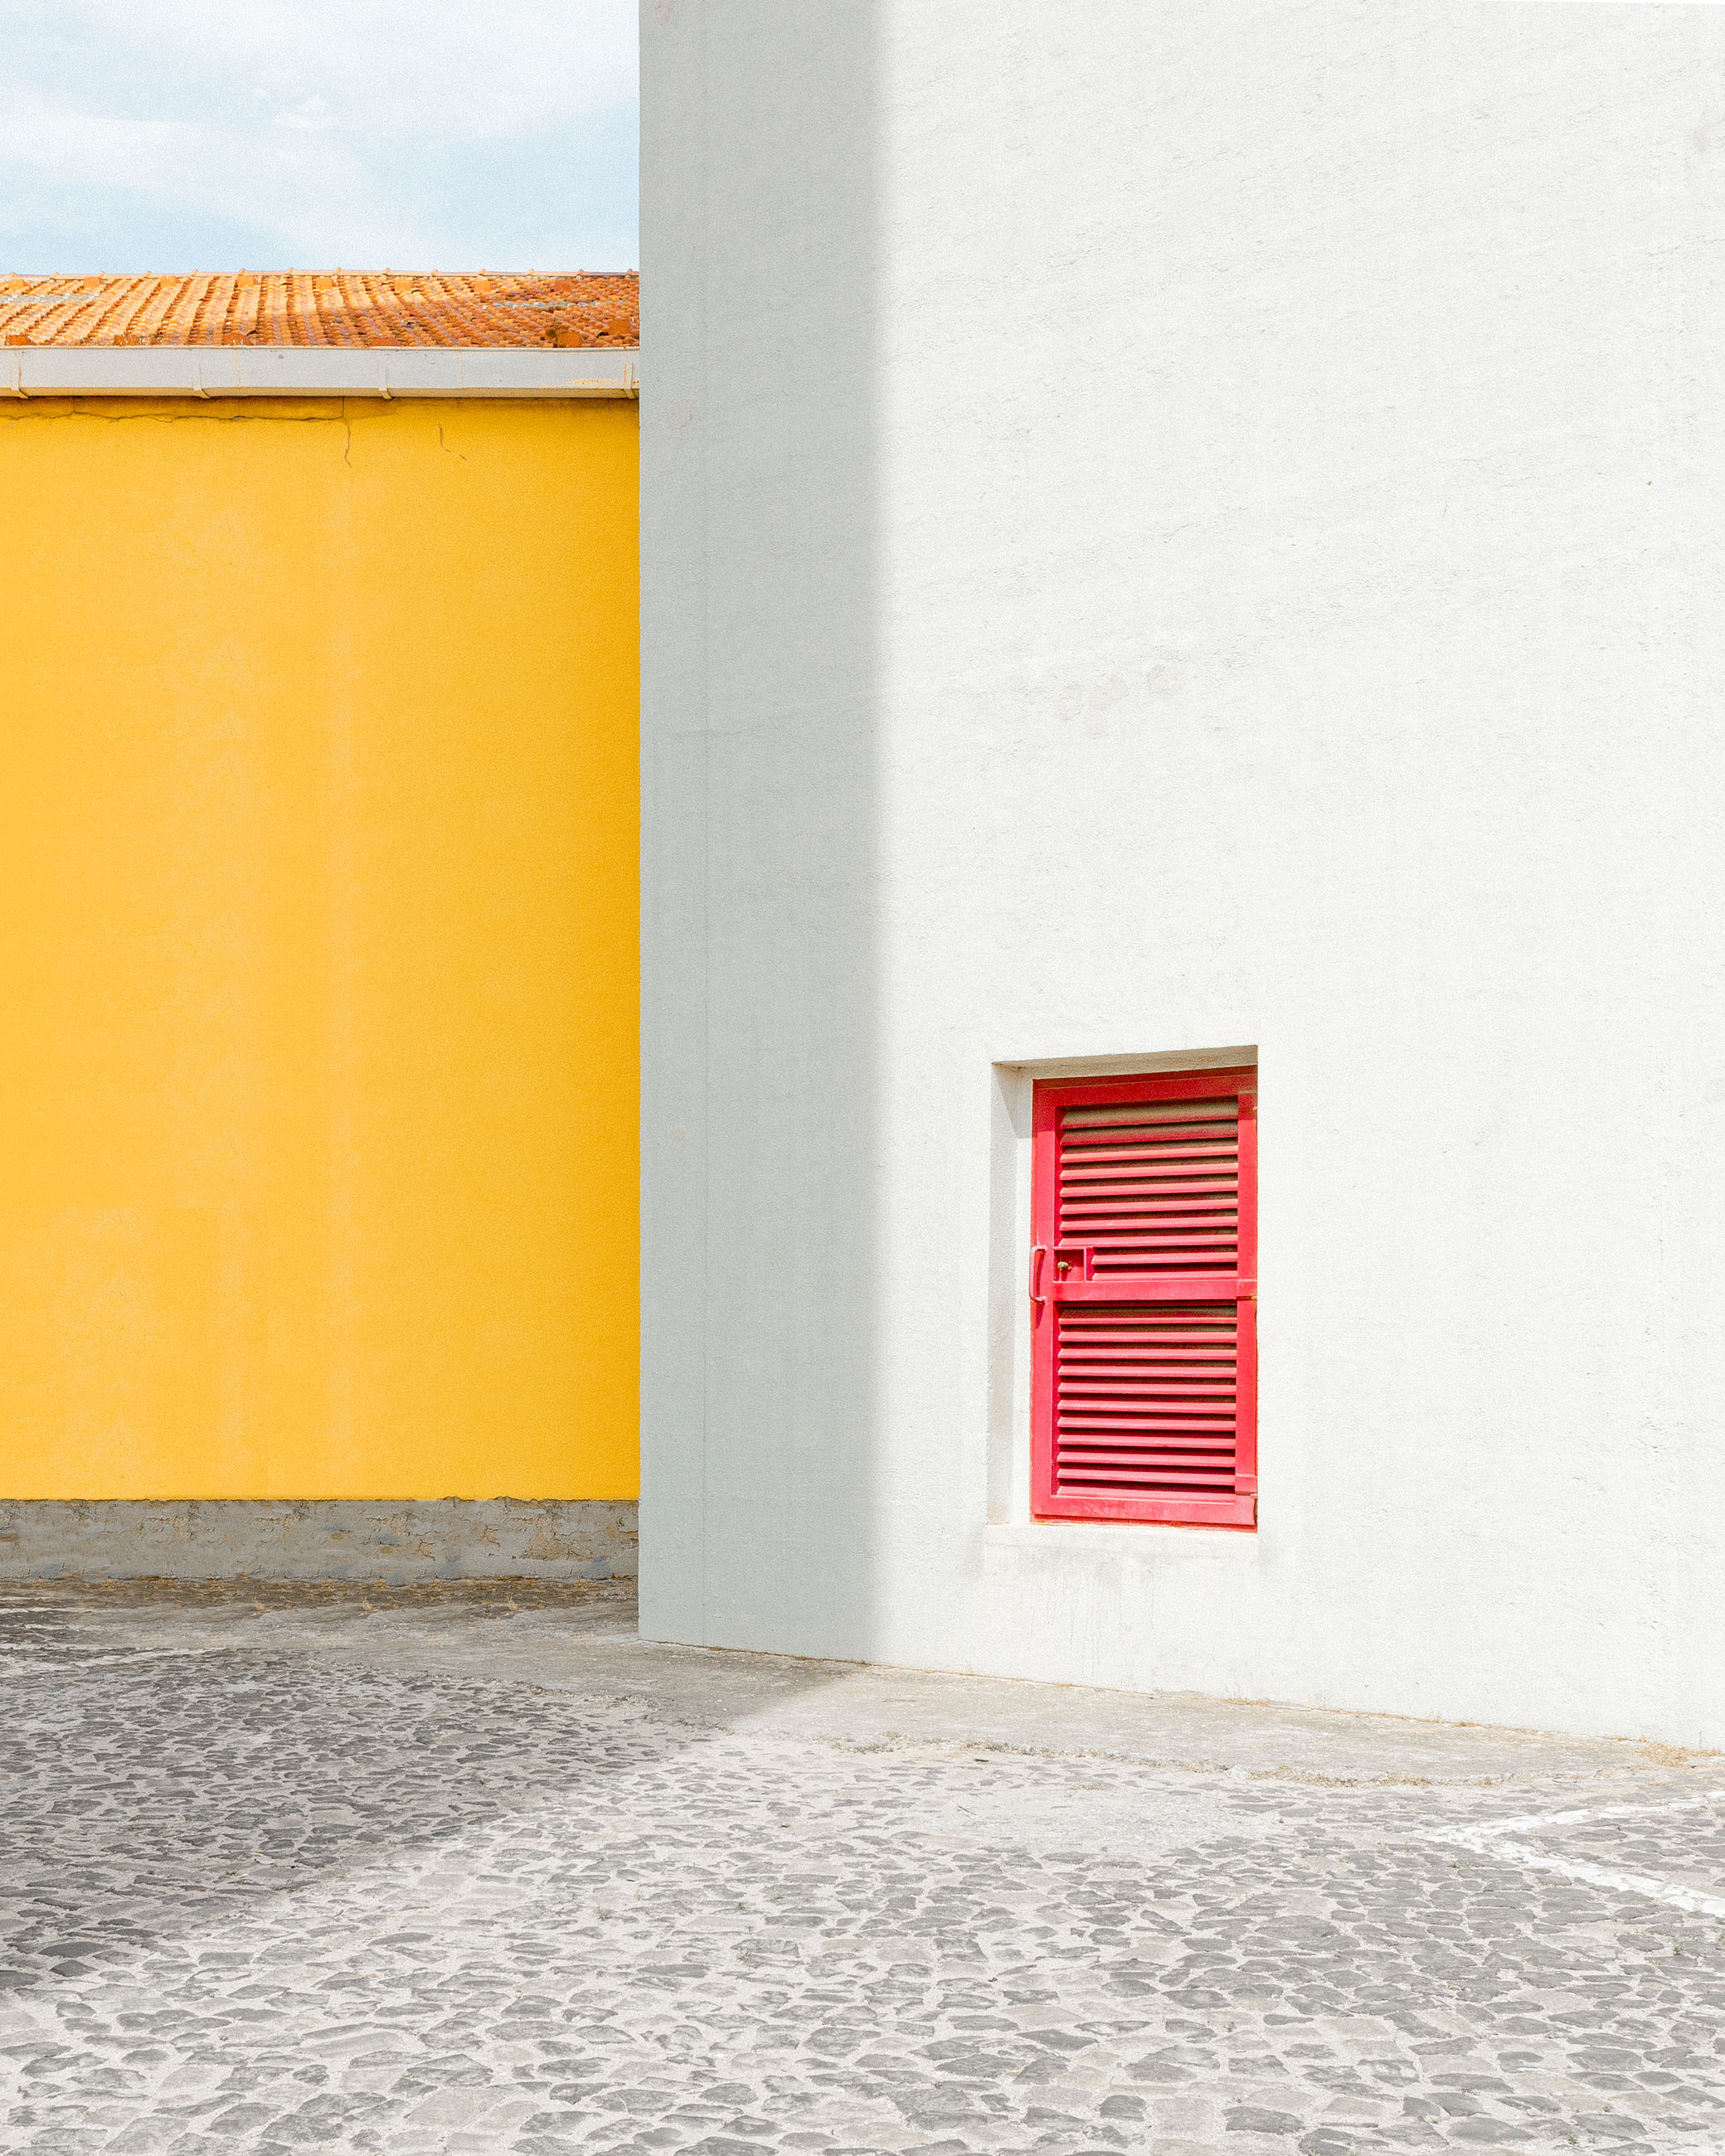 architecture, built structure, building exterior, building, door, wall - building feature, entrance, no people, house, day, wall, yellow, outdoors, closed, red, window, nature, sunlight, residential district, empty, place